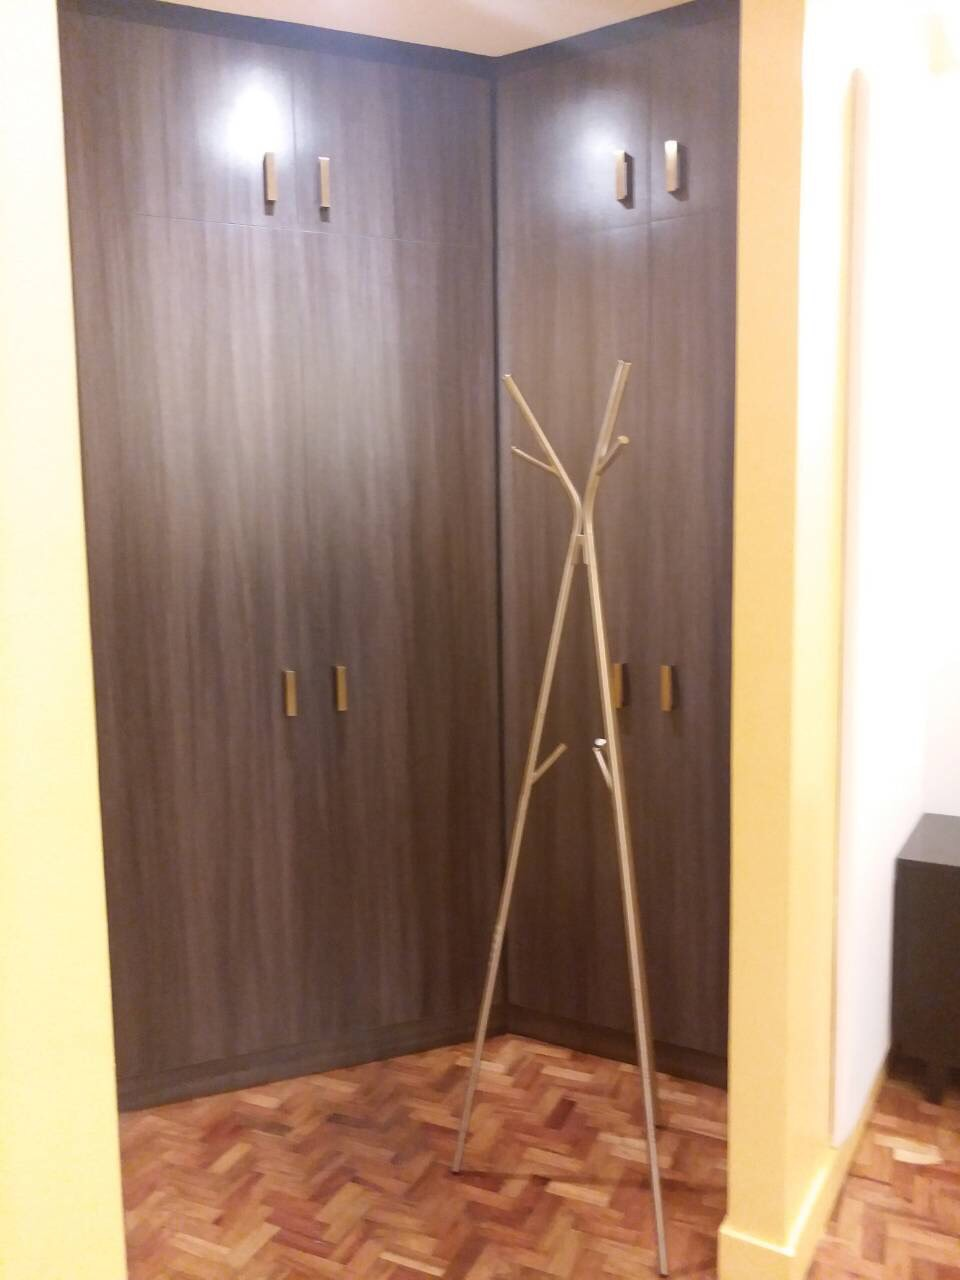 For Rent, Almond, Two Serendra, BGC, Taguig City Closet